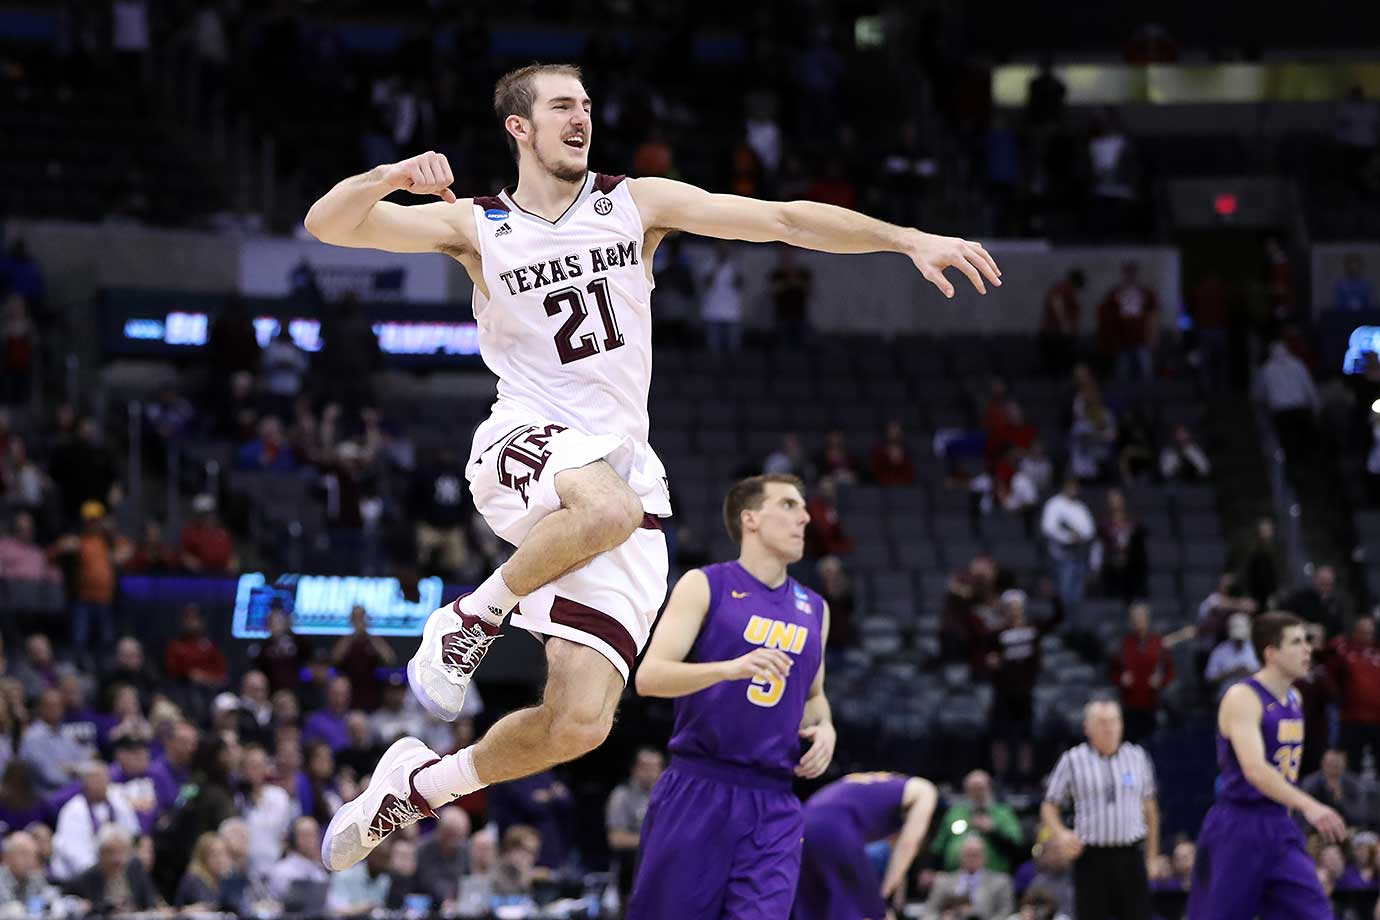 Here are some of the images that caught our eye on a day in which Texas A&M stole the show by overcoming an 12-point deficit in the final 34 seconds of regulation against Northern Iowa and winning in double overtime. Alex Caruso is shown here celebrating the 92-88 victory.